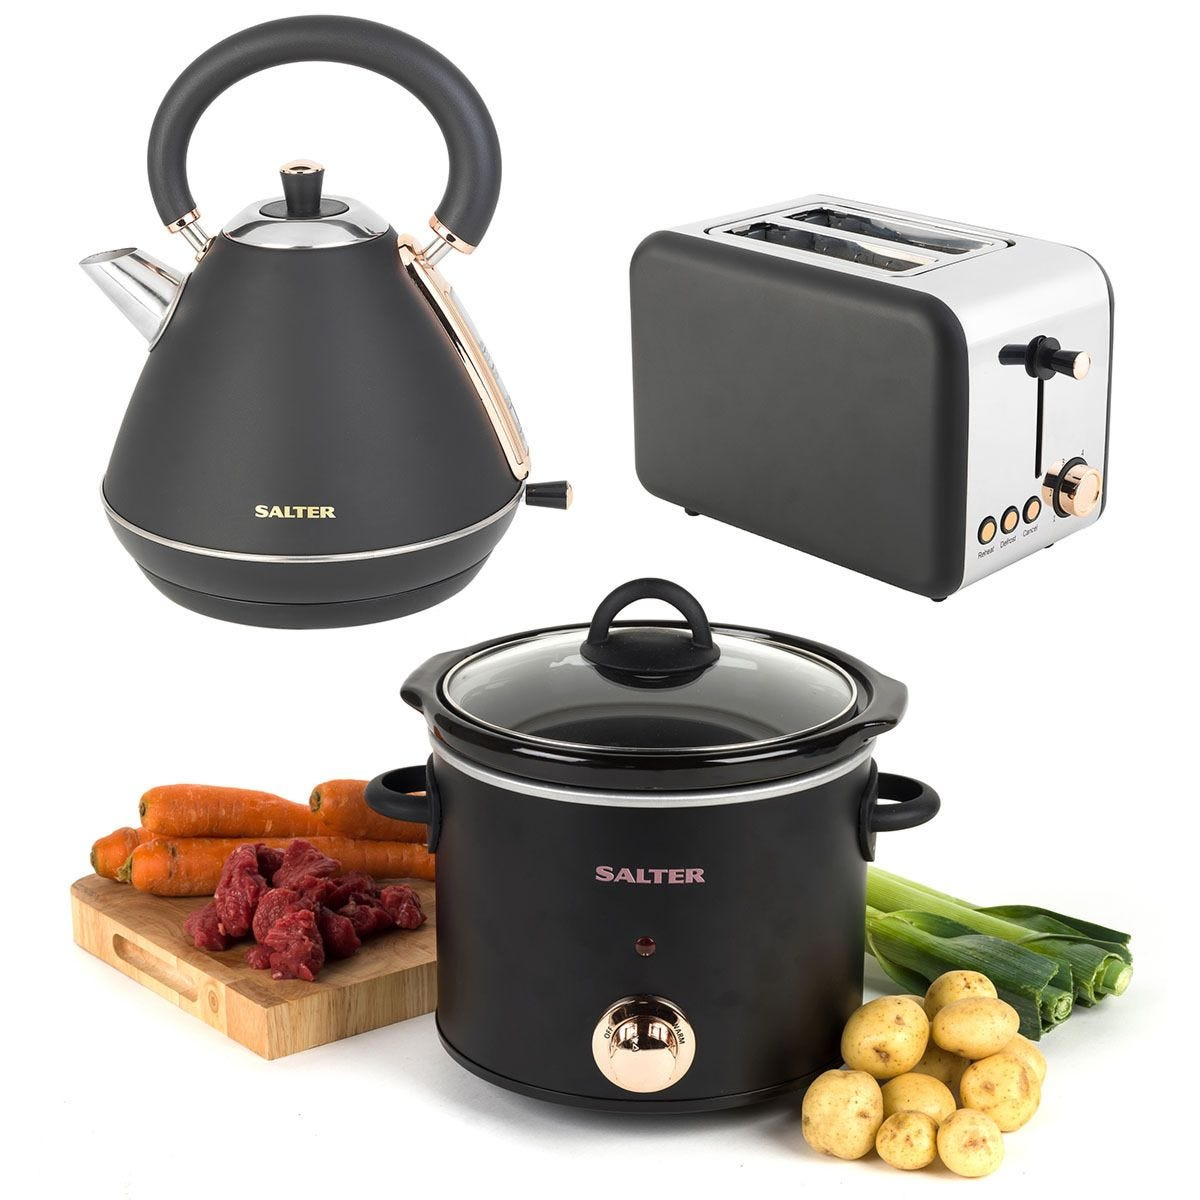 Salter 3KW 1.7L Pyramid Kettle, 2-Slice Toaster, & 3.5L Slow Cooker Set- Rose Gold